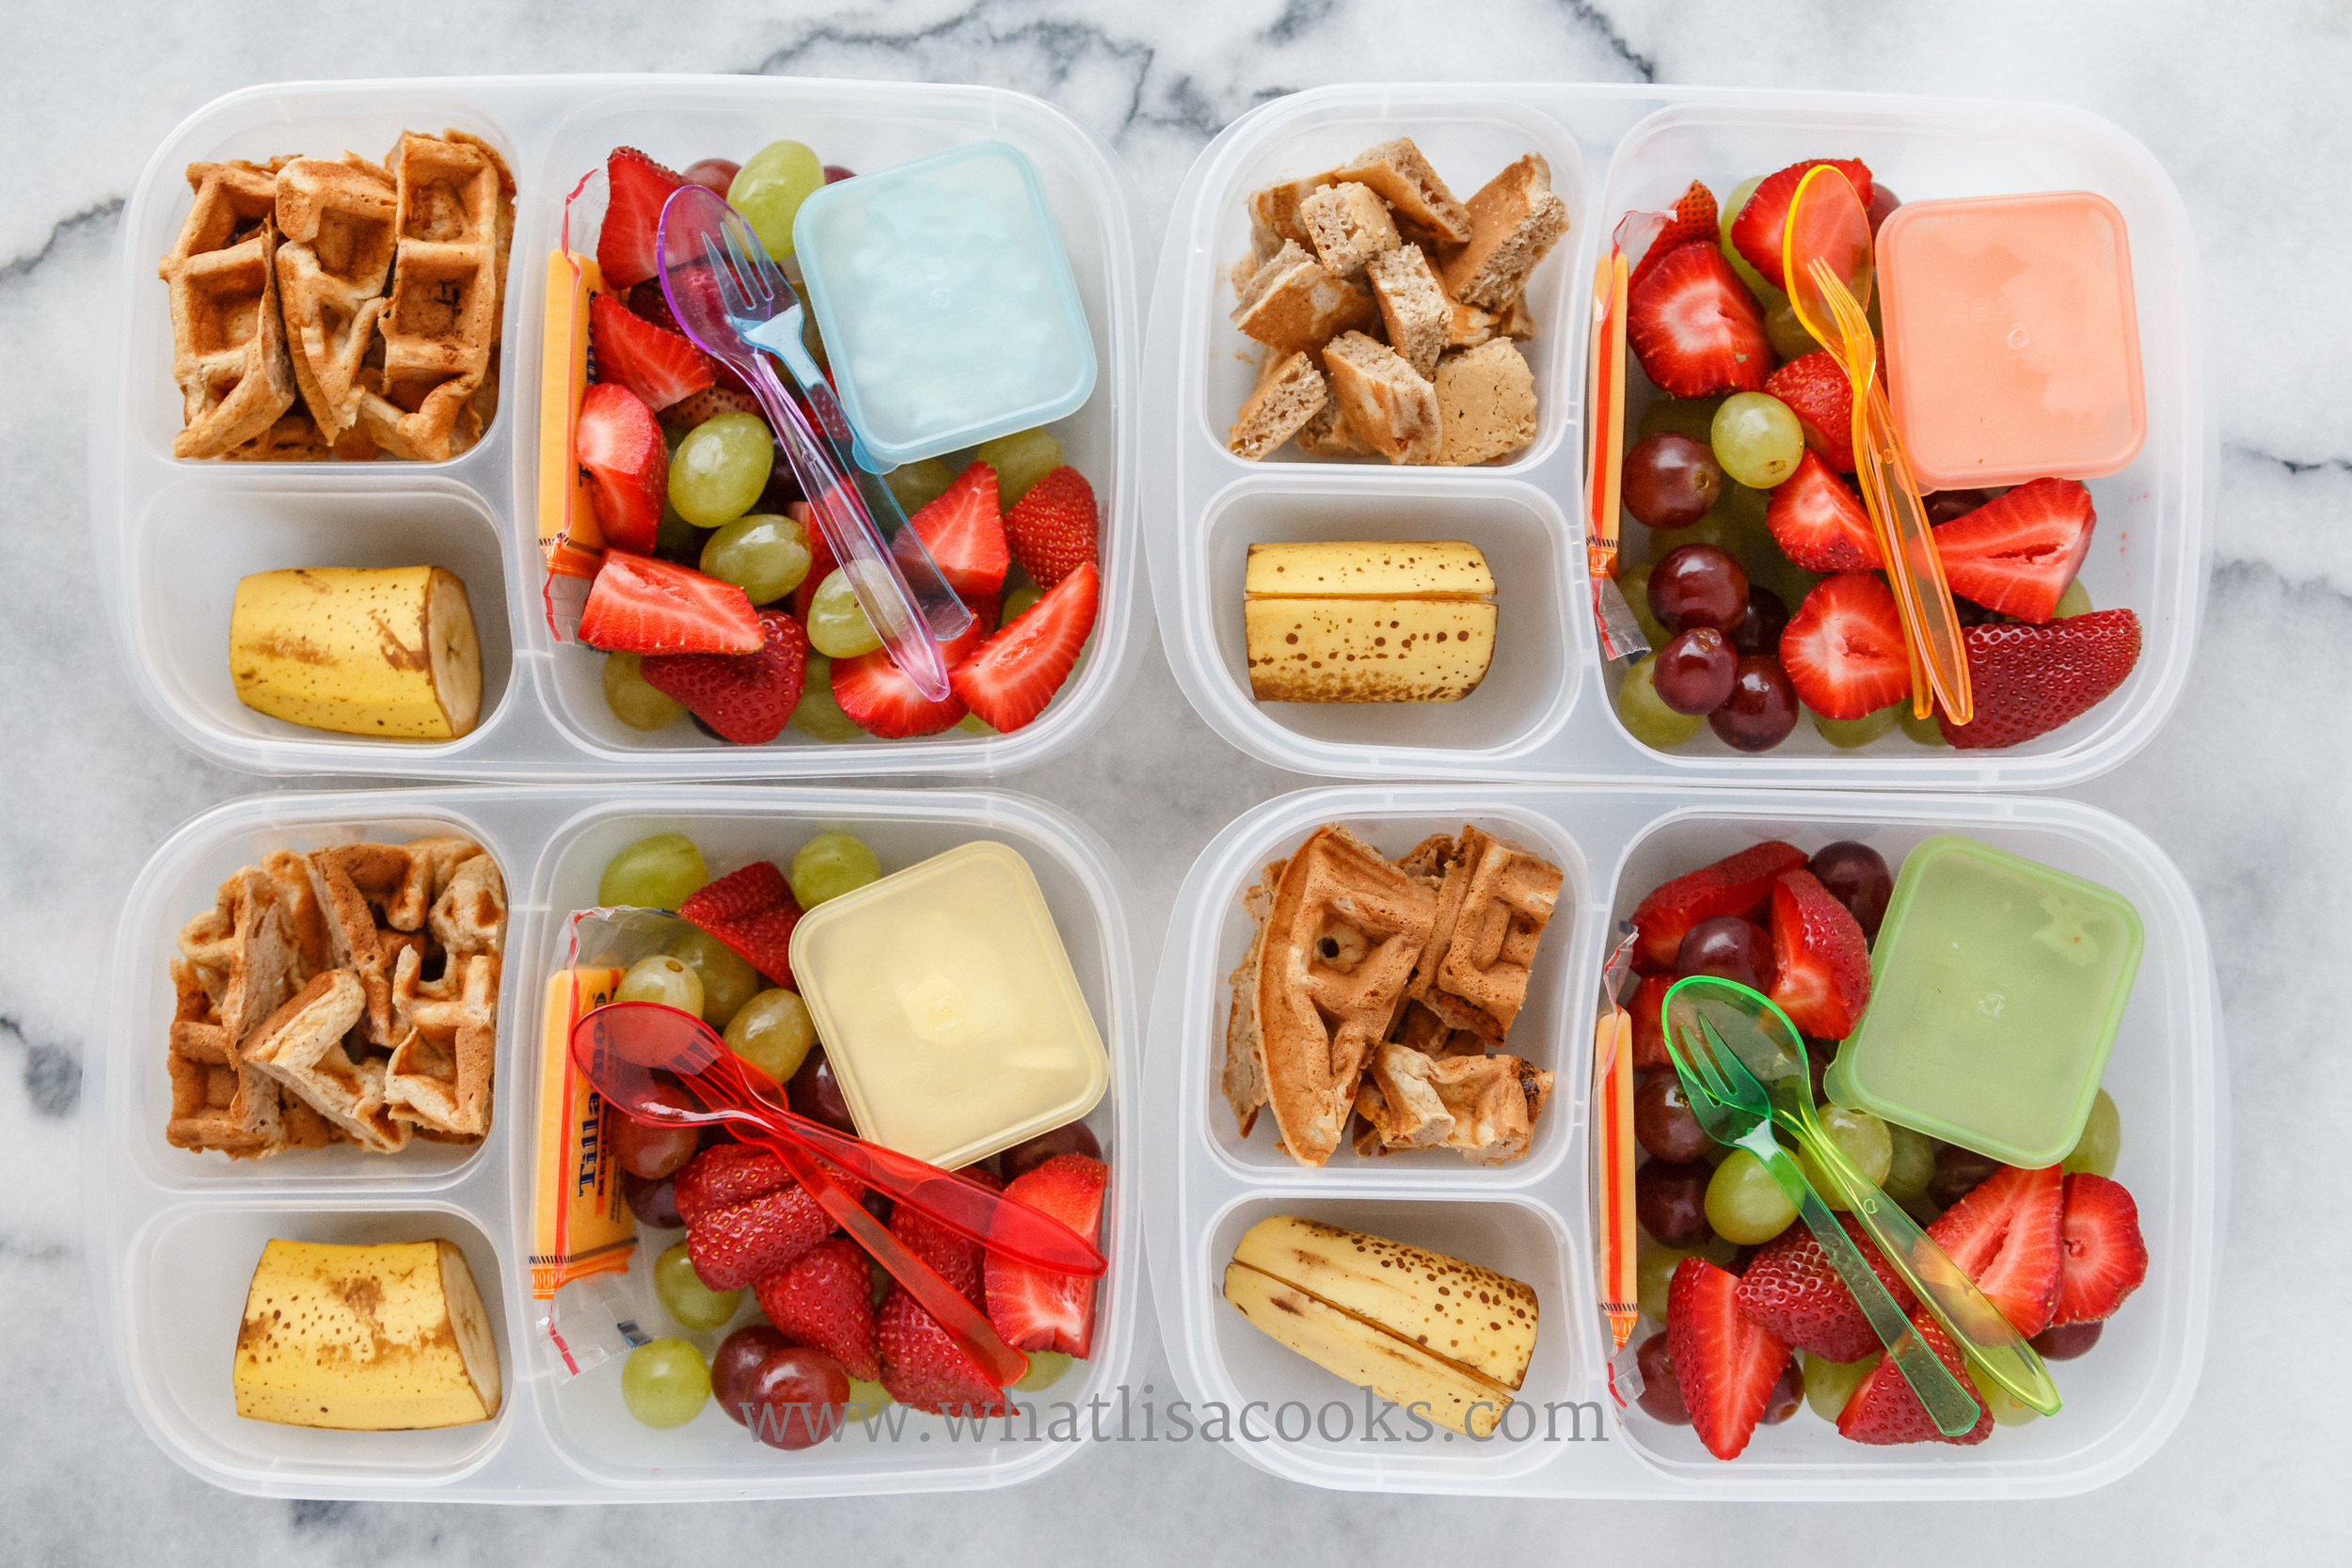 Waffle bites, banana, strawberries, grapes, and cheese.  One has whipped cream for dipping, one has cottage cheese, two have yogurt. Packed in  Easy Lunchboxes .